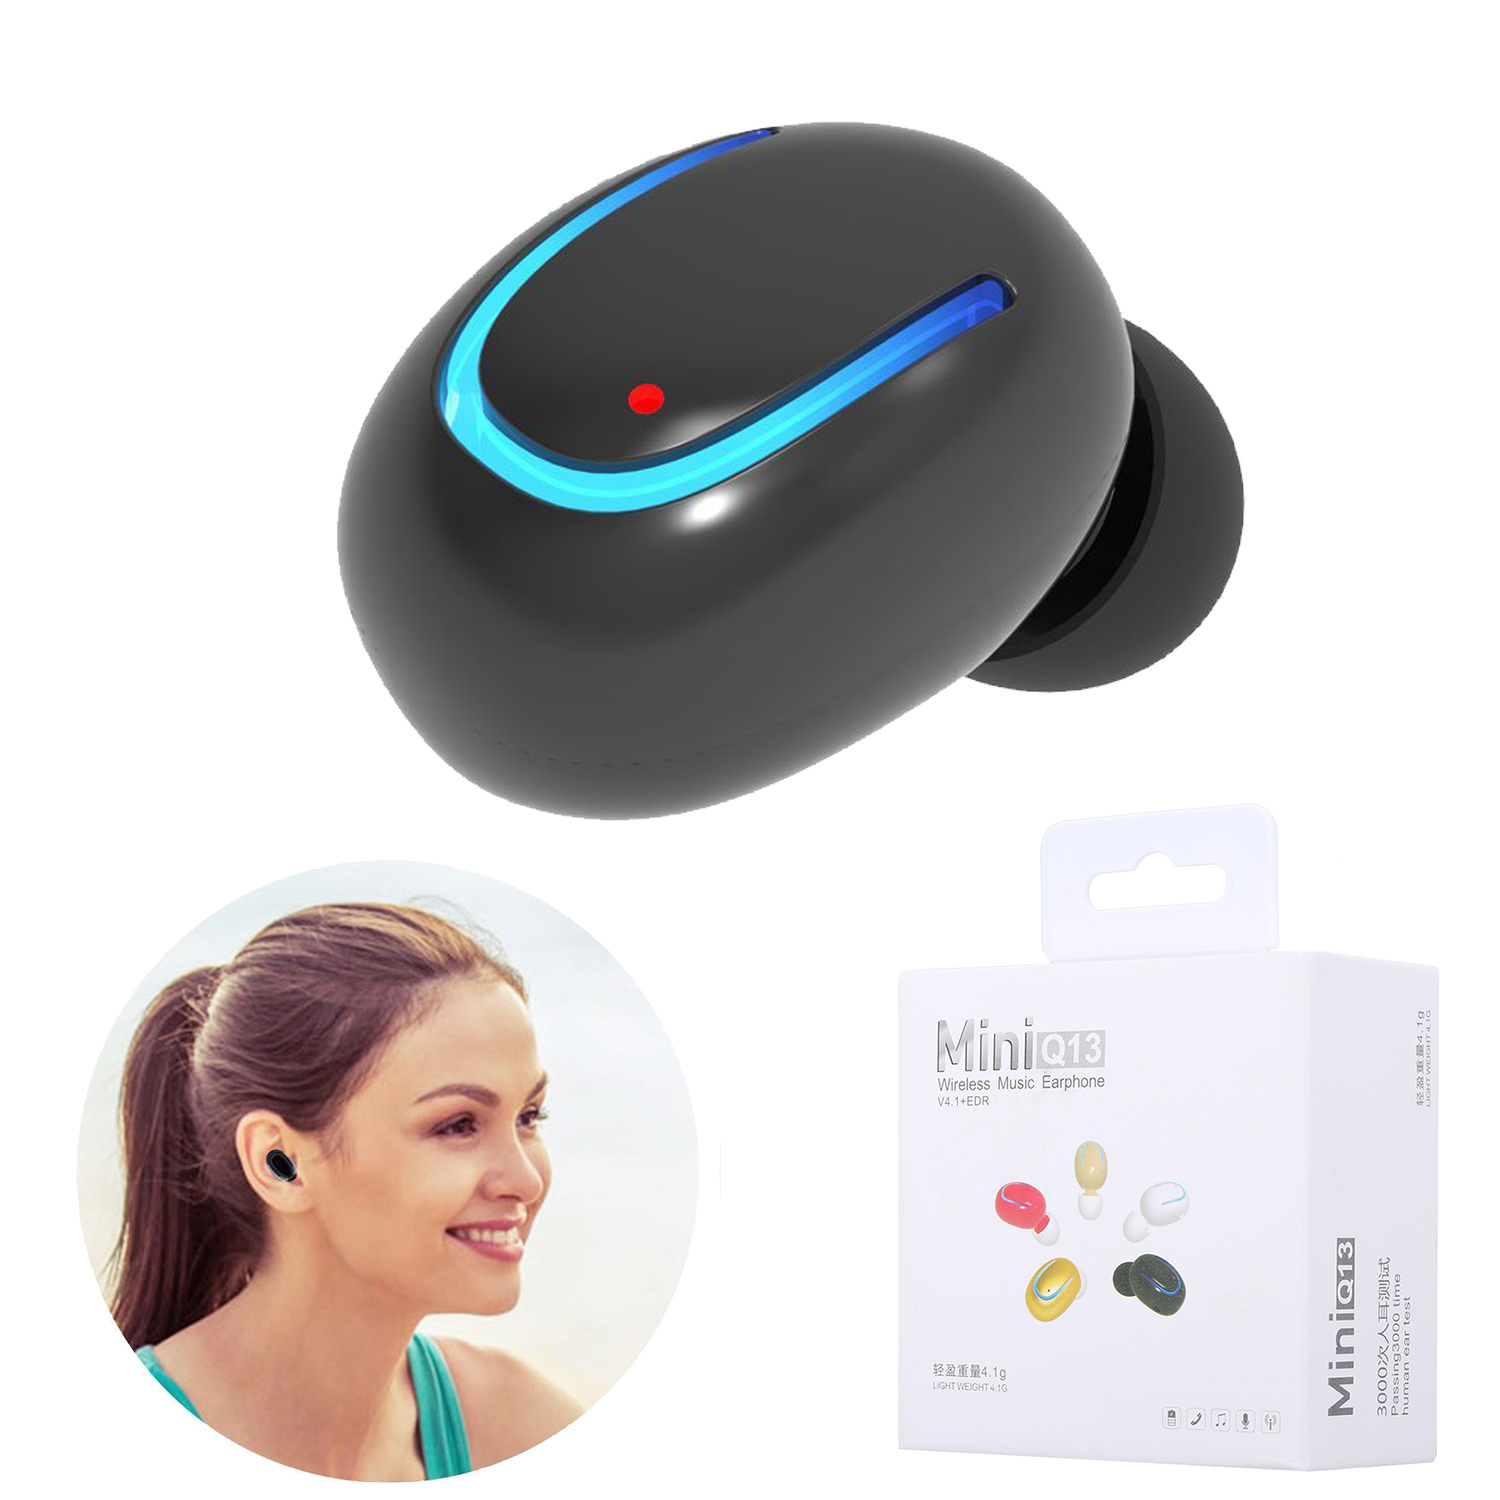 Mini Bluetooth Earbud Smallest Wireless Invisible Headphone With 6 Hour Playtime Car Headset With Mic for iPhonE X 8 7 Samsung LG Android